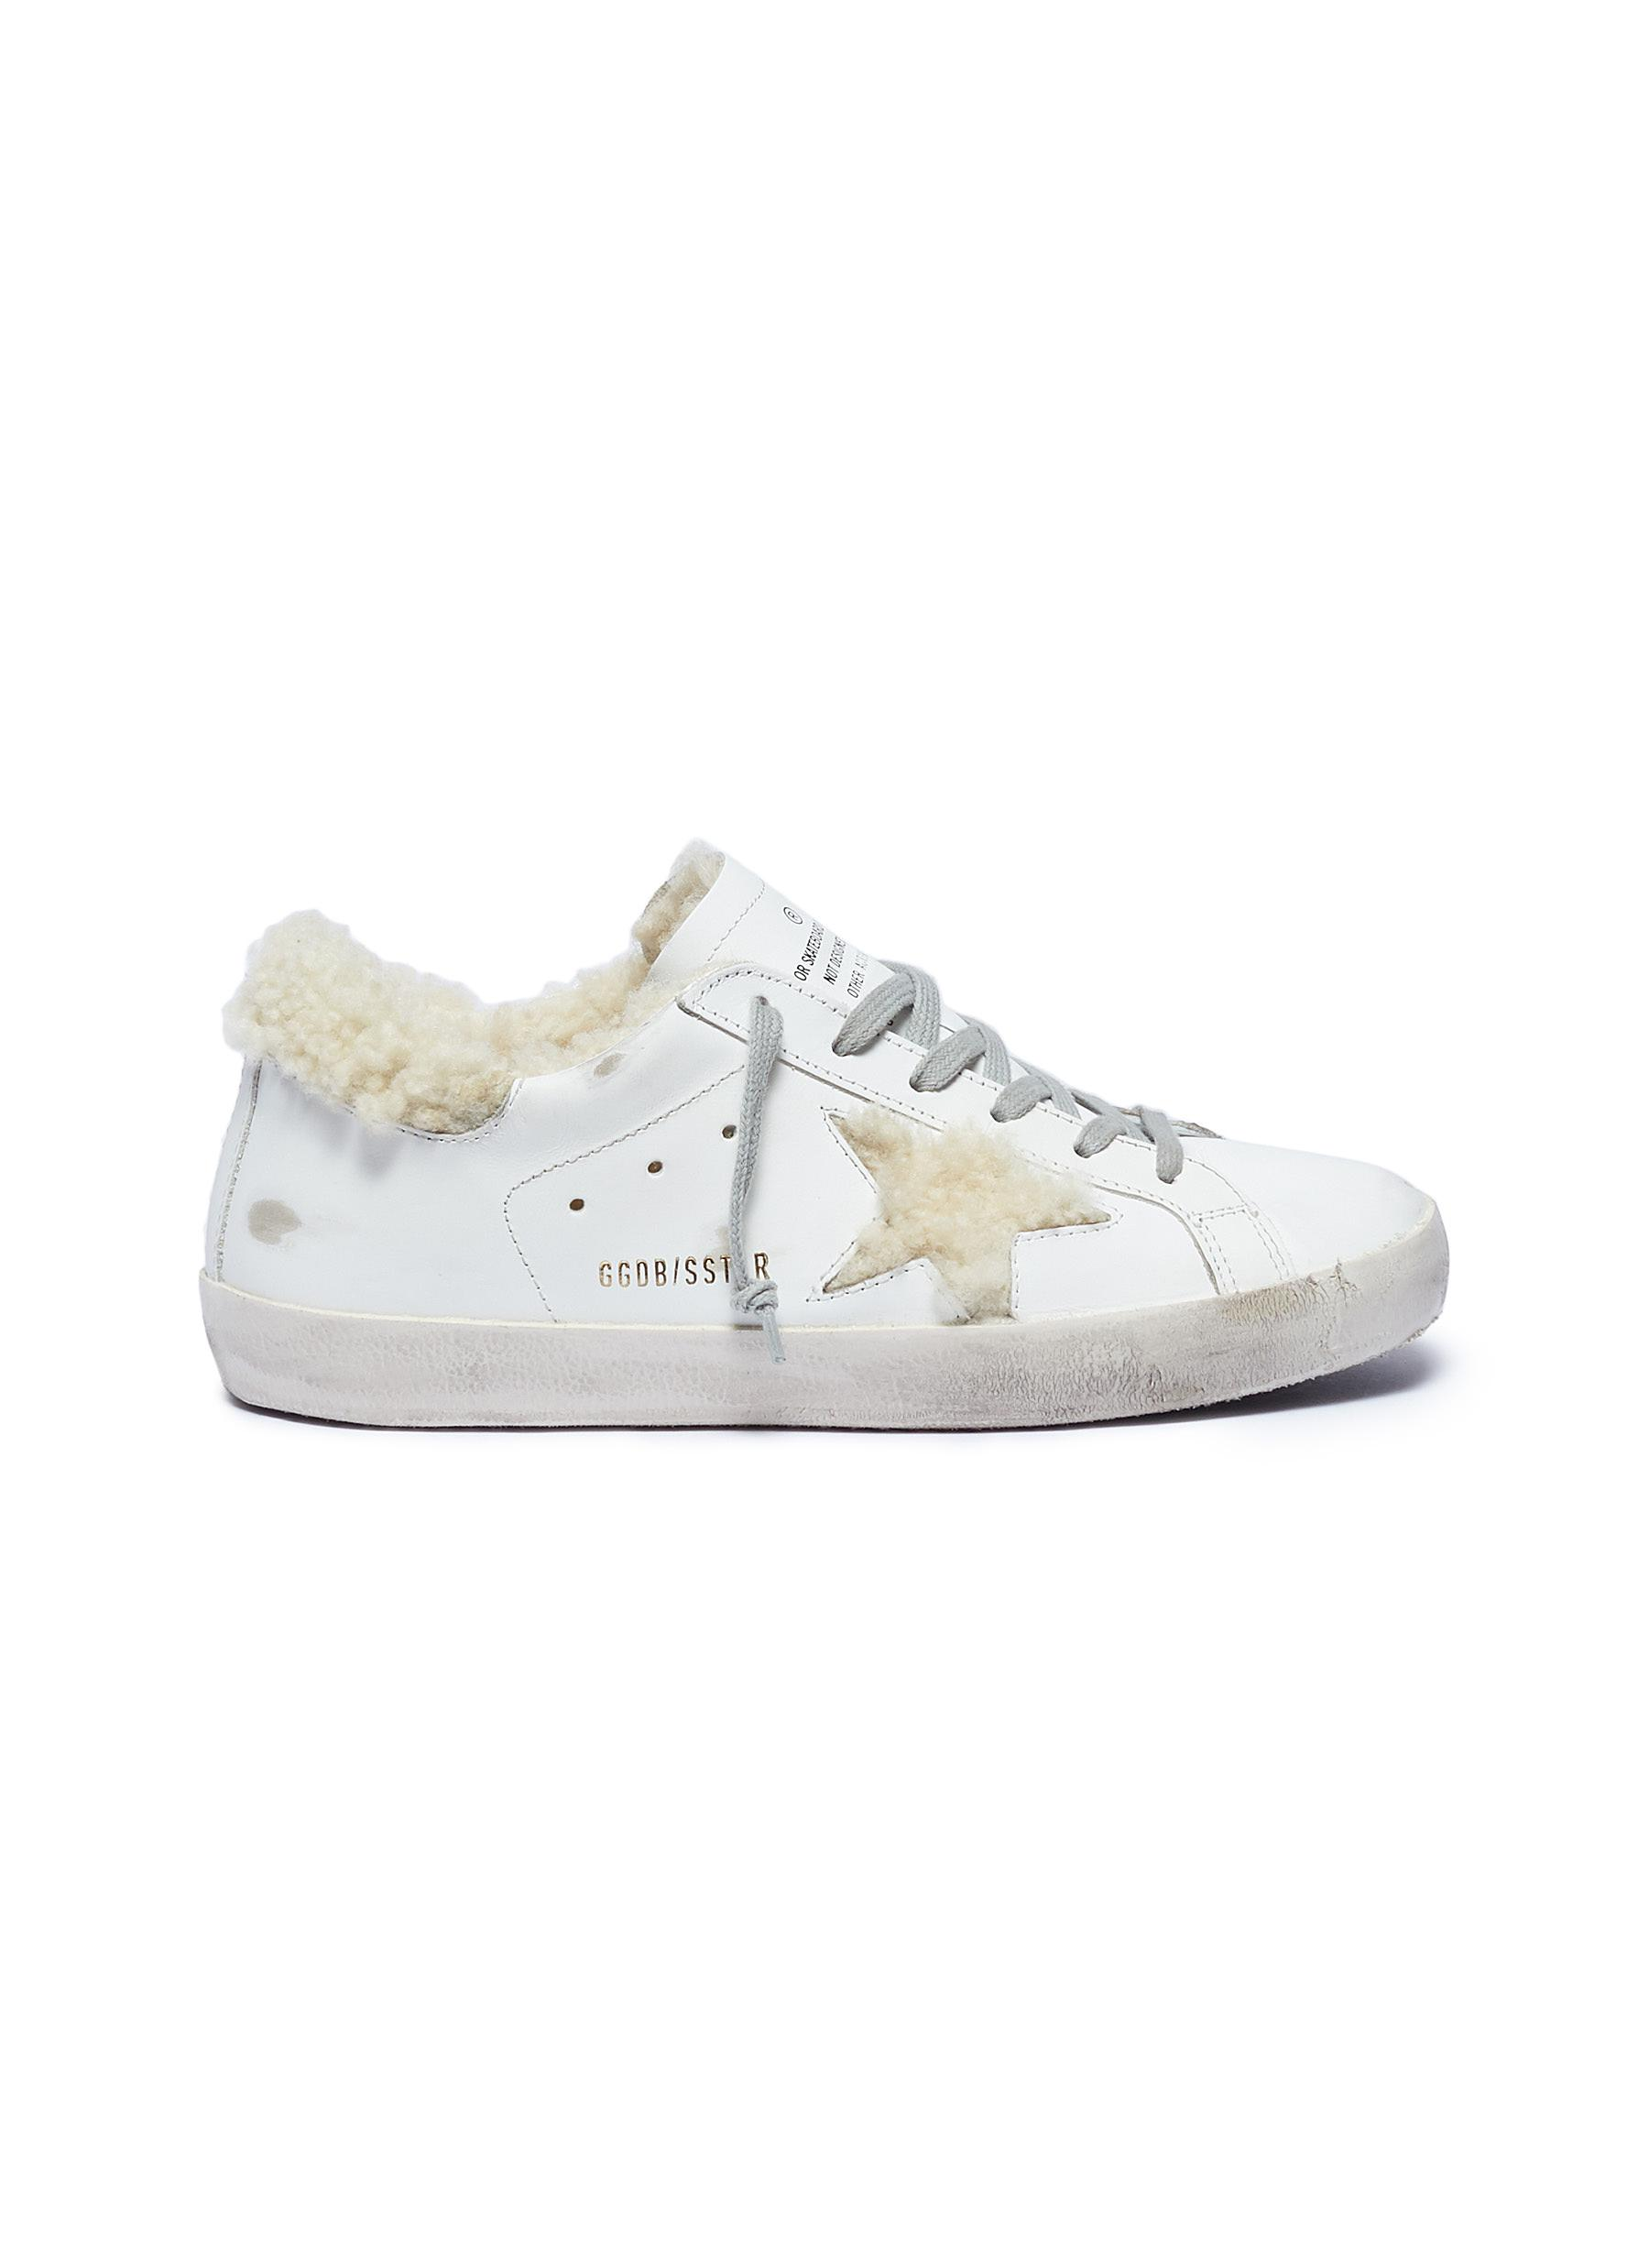 Superstar shearling lined leather sneakers by Golden Goose